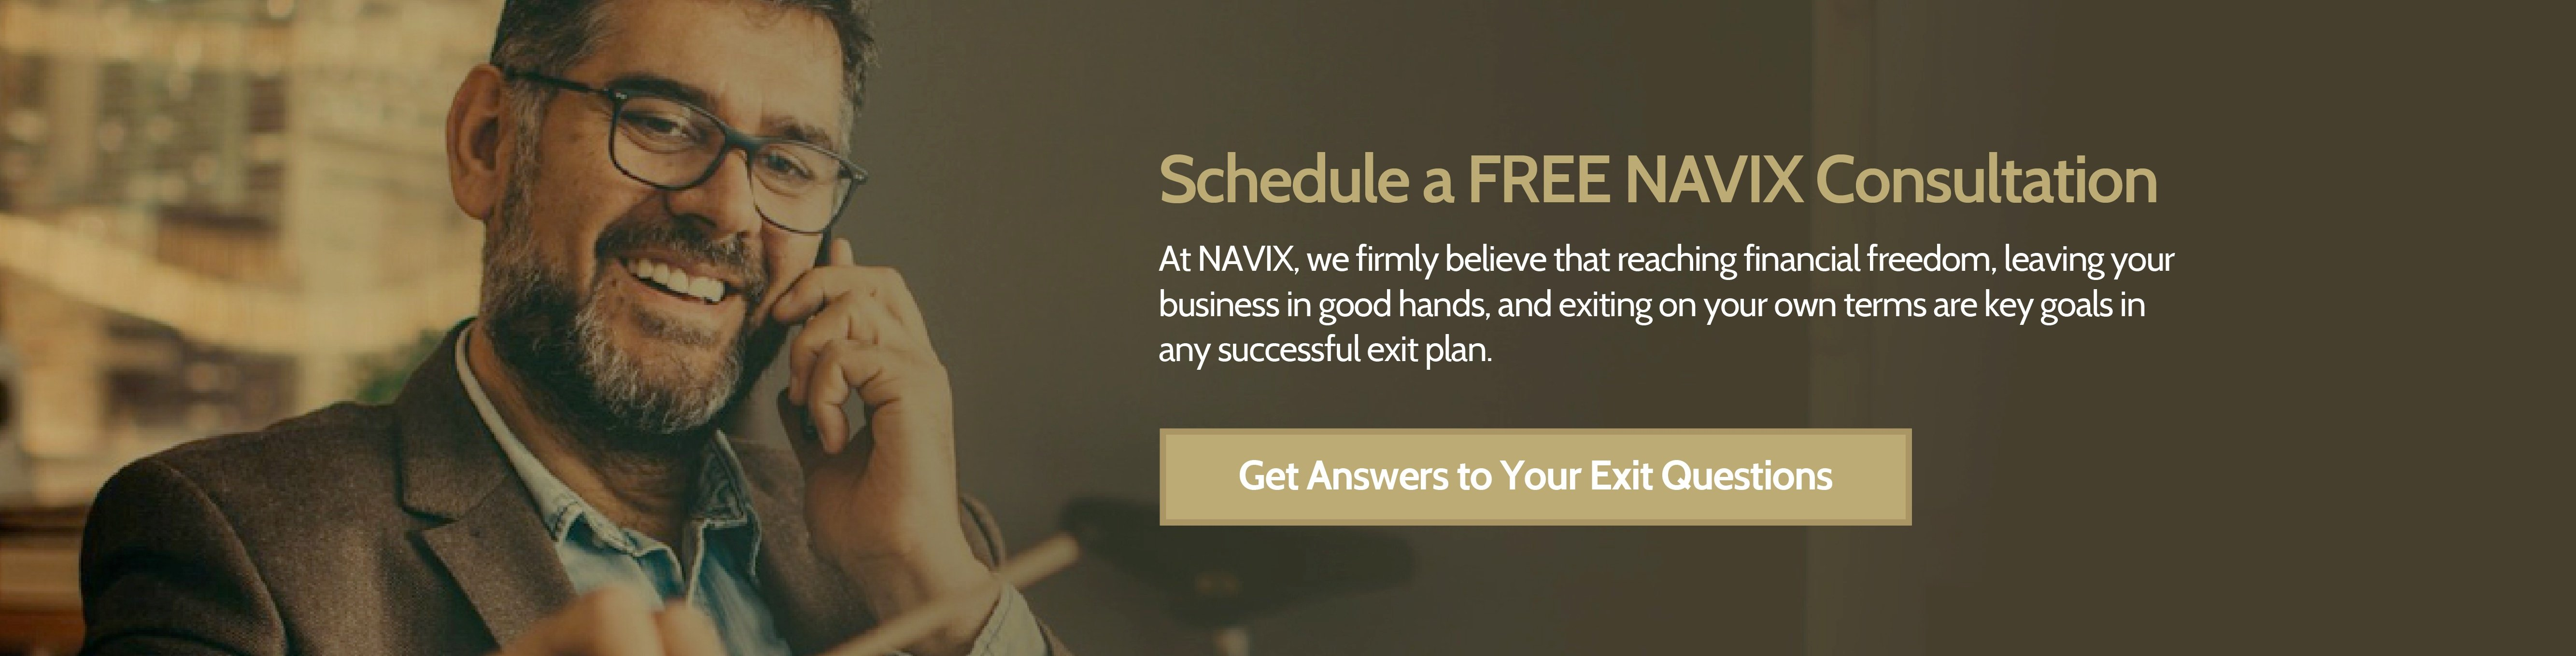 Schedule a FREE NAVIX Consultation today